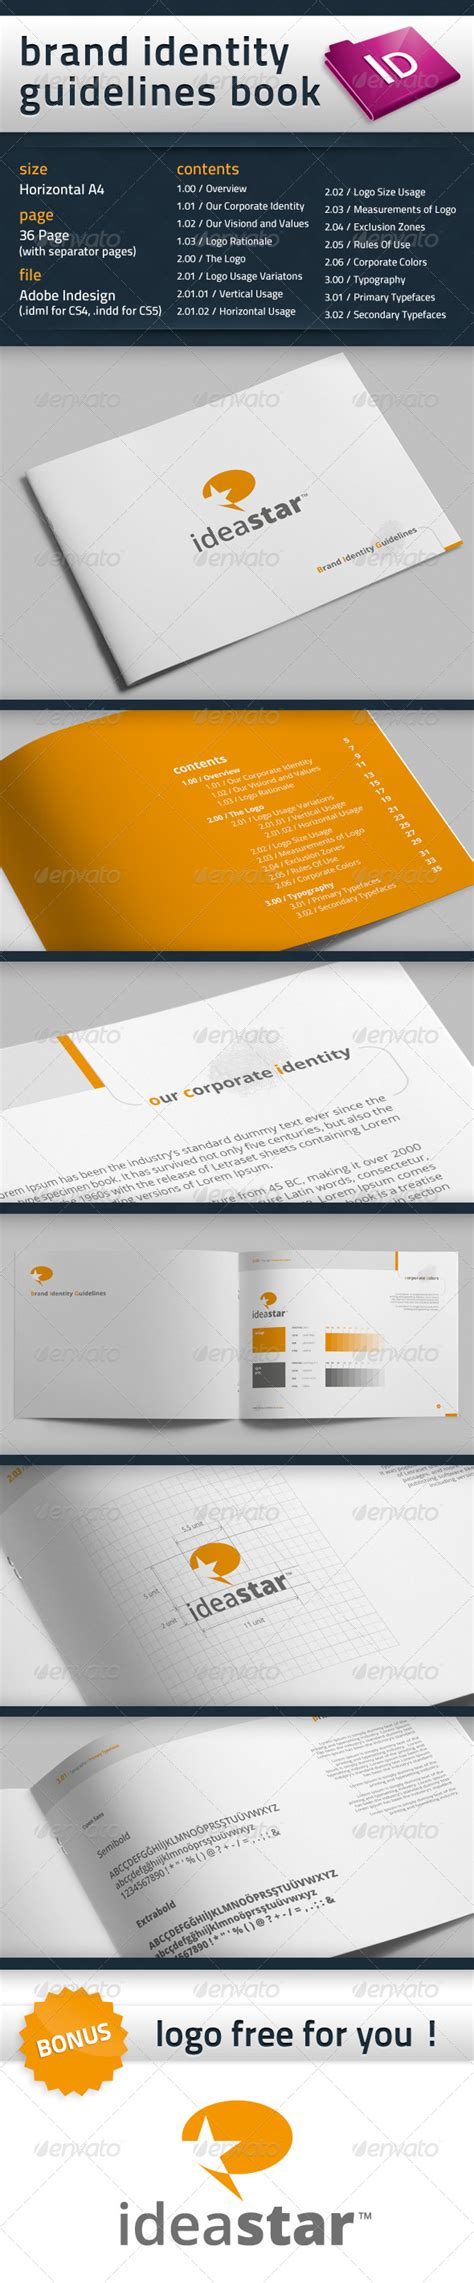 Free Indesign Brand Book Template 187 Dondrup Com Brand Book Template Free